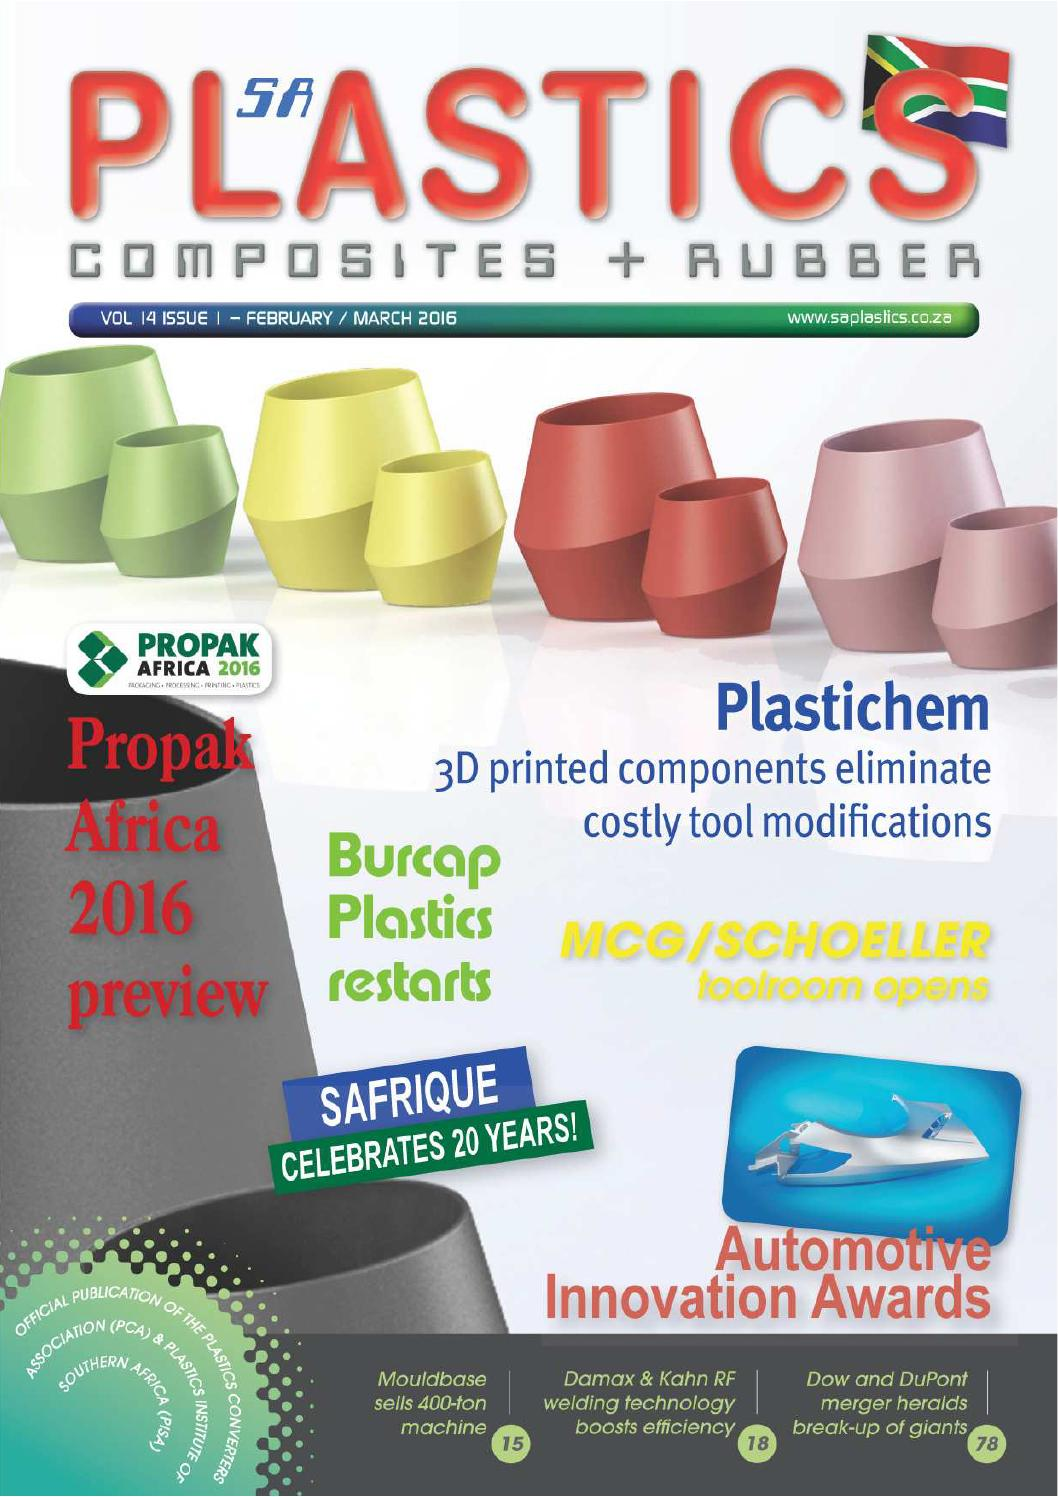 Sa Plastics Feb Mar 2016 By Composites Rubber Issuu How To Recycle Gold From Circuit Boards Ehow Uk